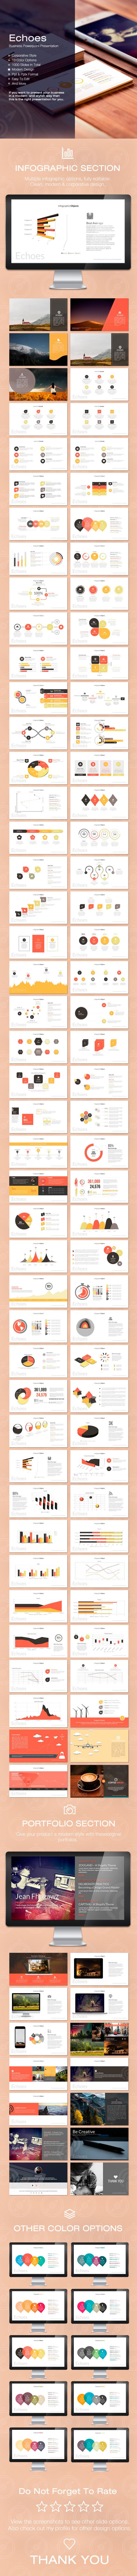 Echoes Powerpoint - Business PowerPoint Templates